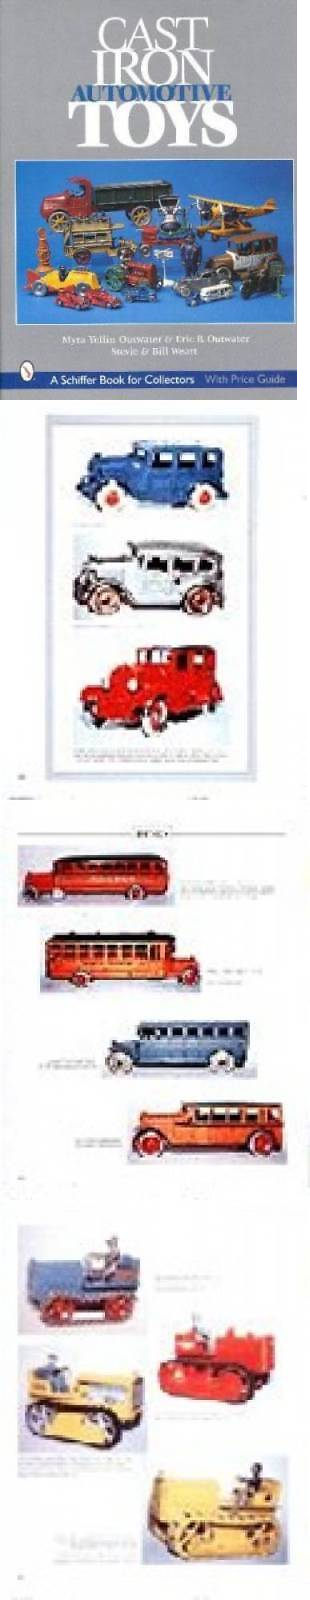 Price Guides and Publications 97093: Antique Cast Iron Car Toy Ref ...